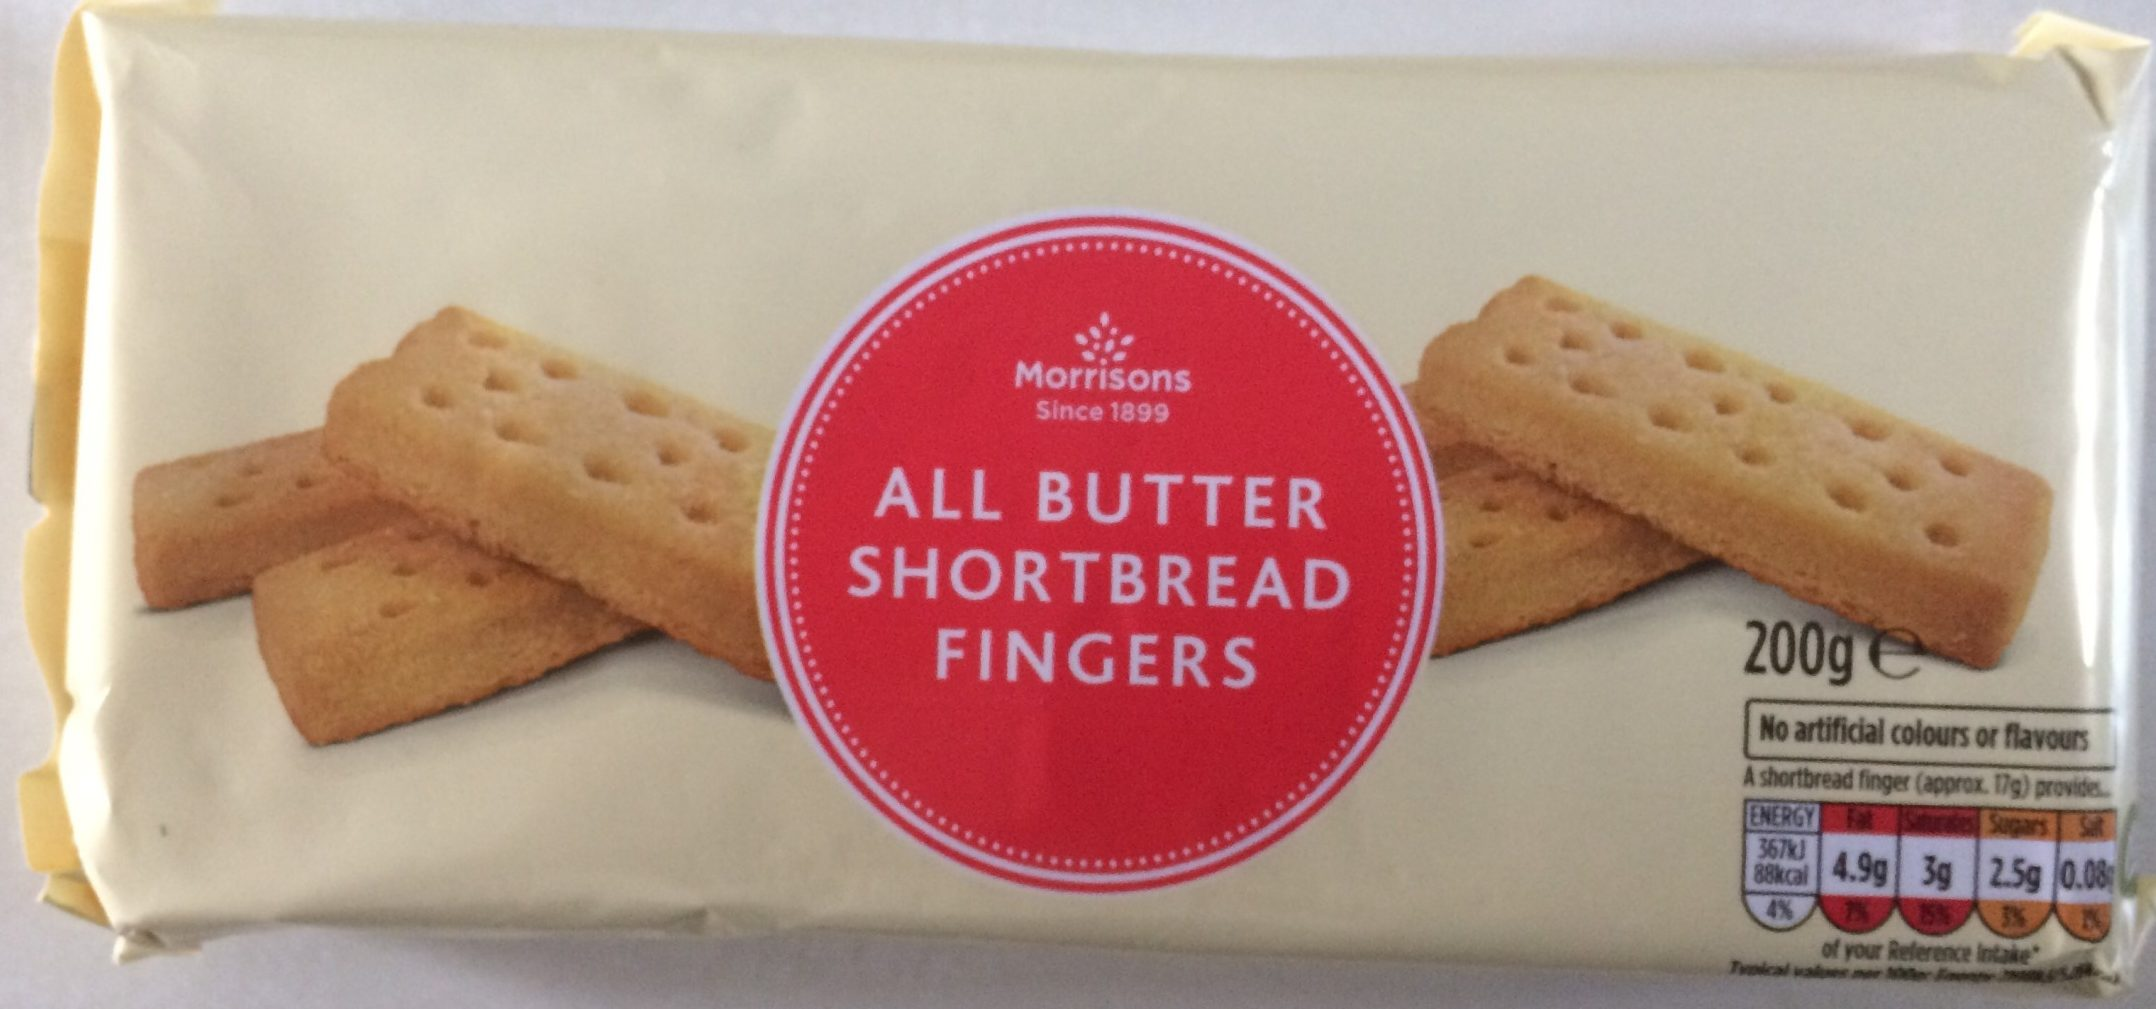 All Butter Shortbread Fingers - Product